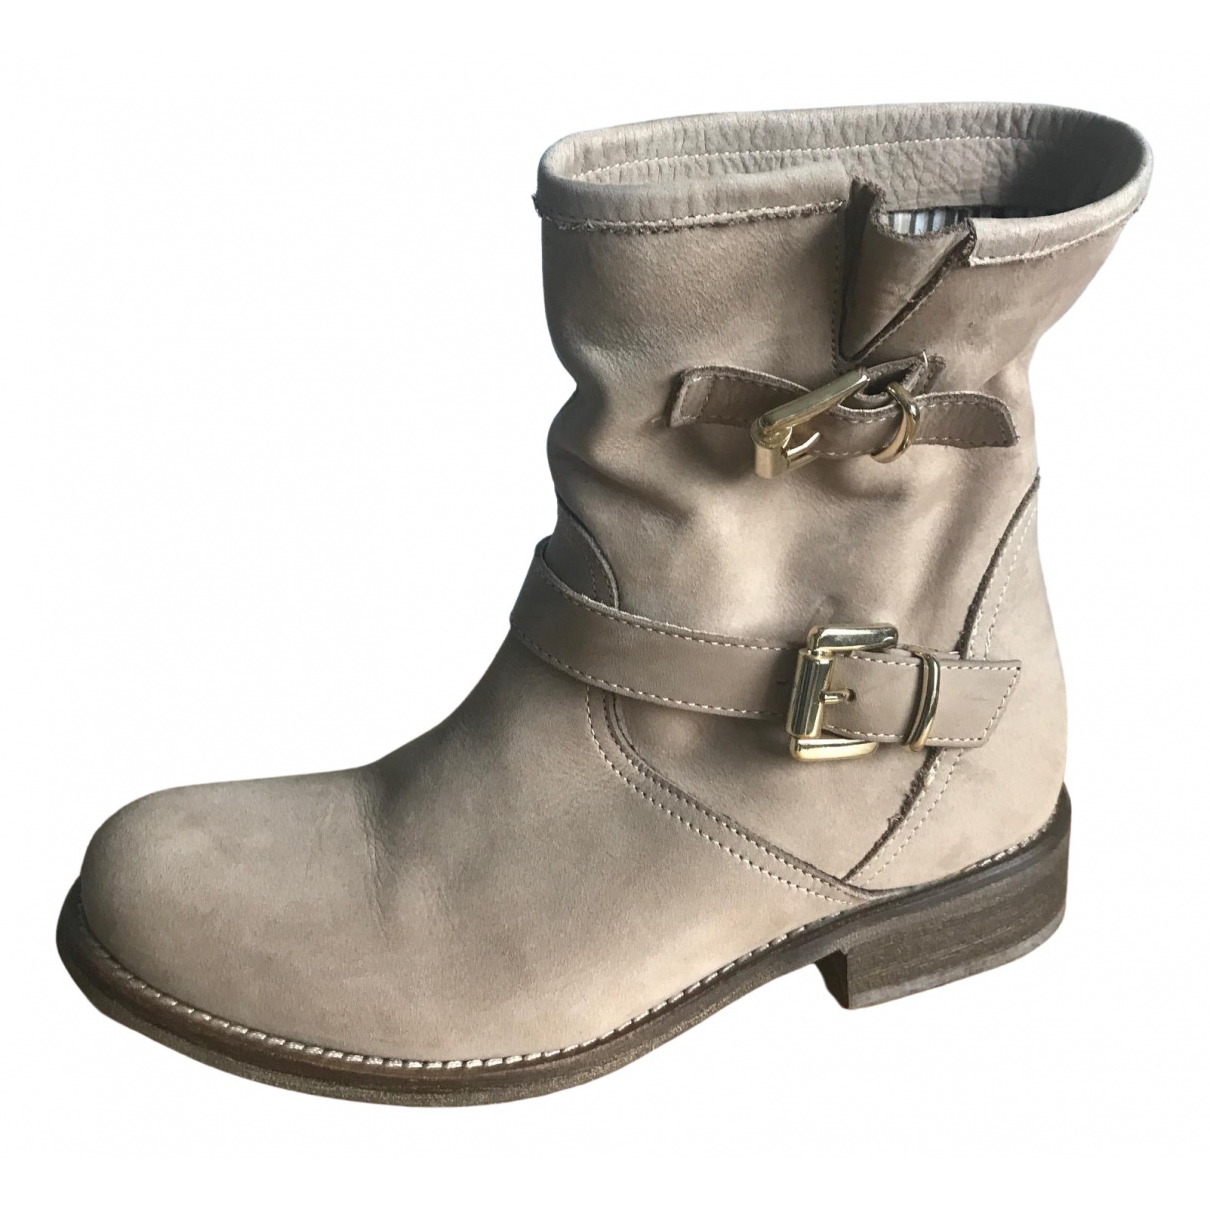 Marella \N Beige Leather Boots for Women 37 IT